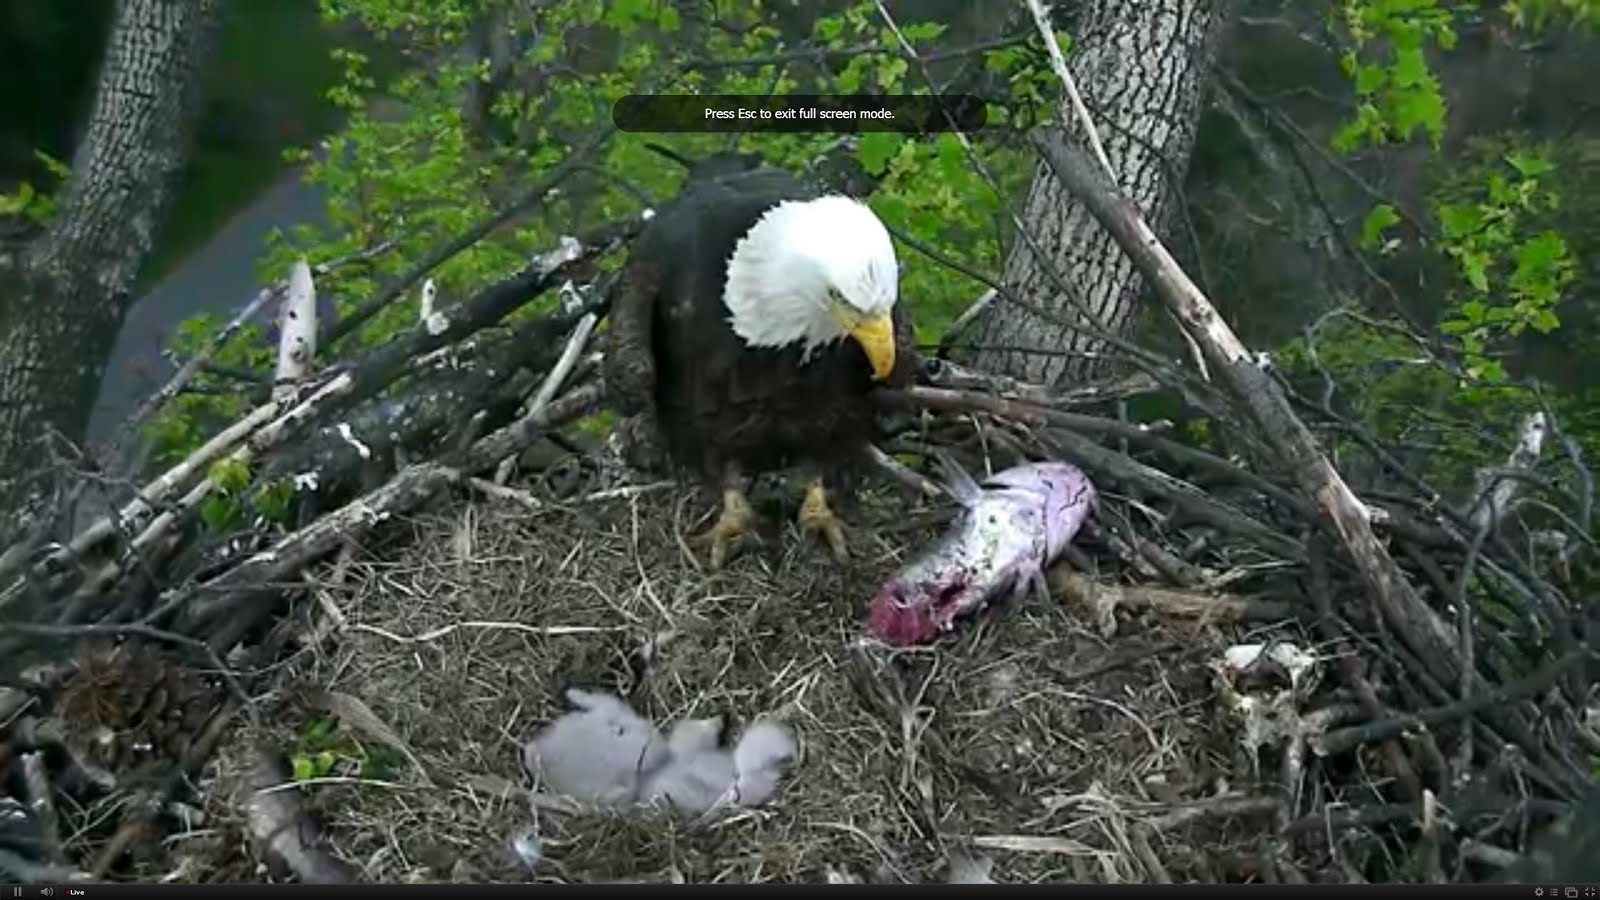 GOD\'s AWESOME ANIMALS 011215 : live cam update 3/25/16 photo: MAMA ...